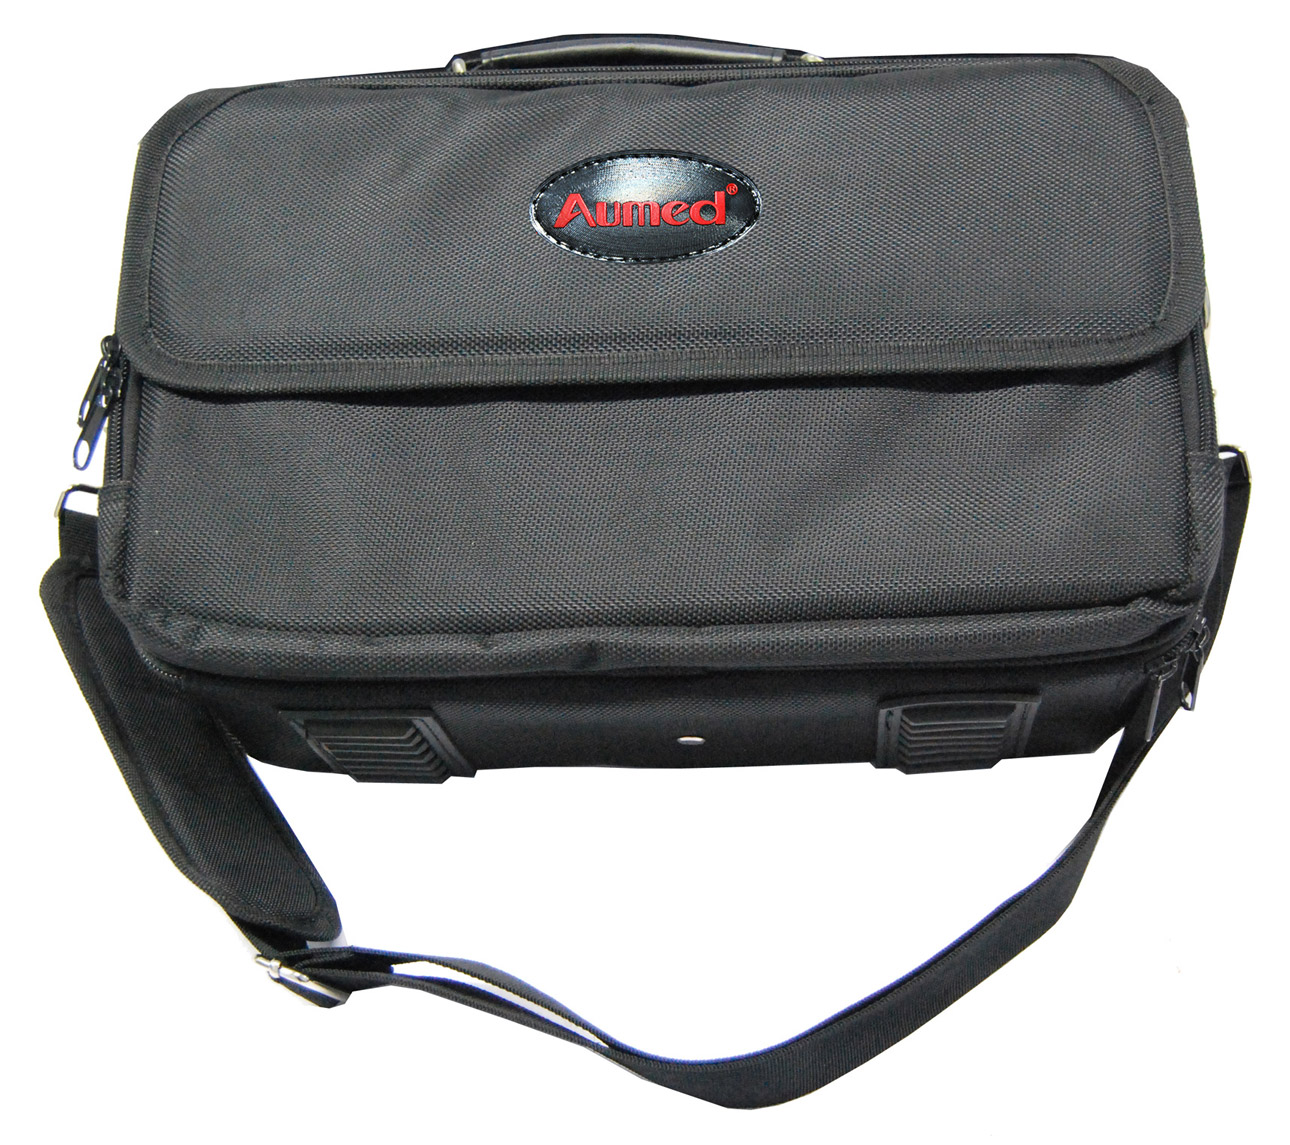 Aumed Aumax-S Video Magnifier Case